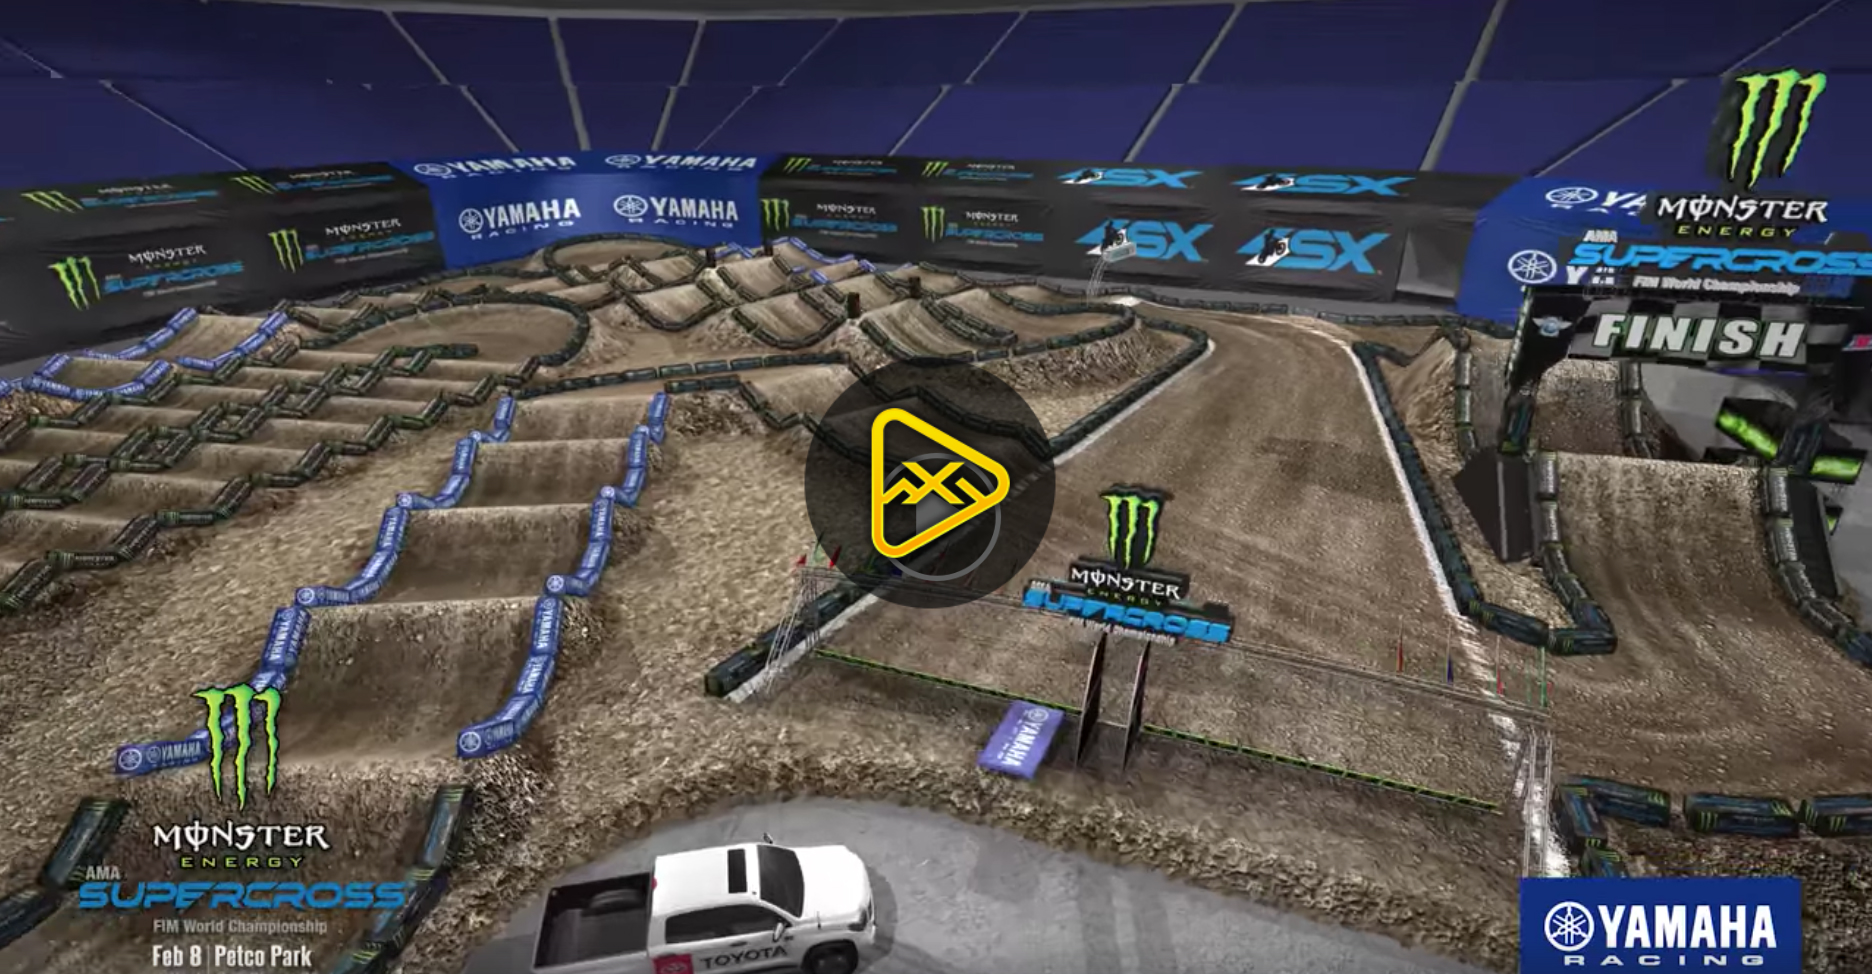 2020 San Diego SX Animated Track Map